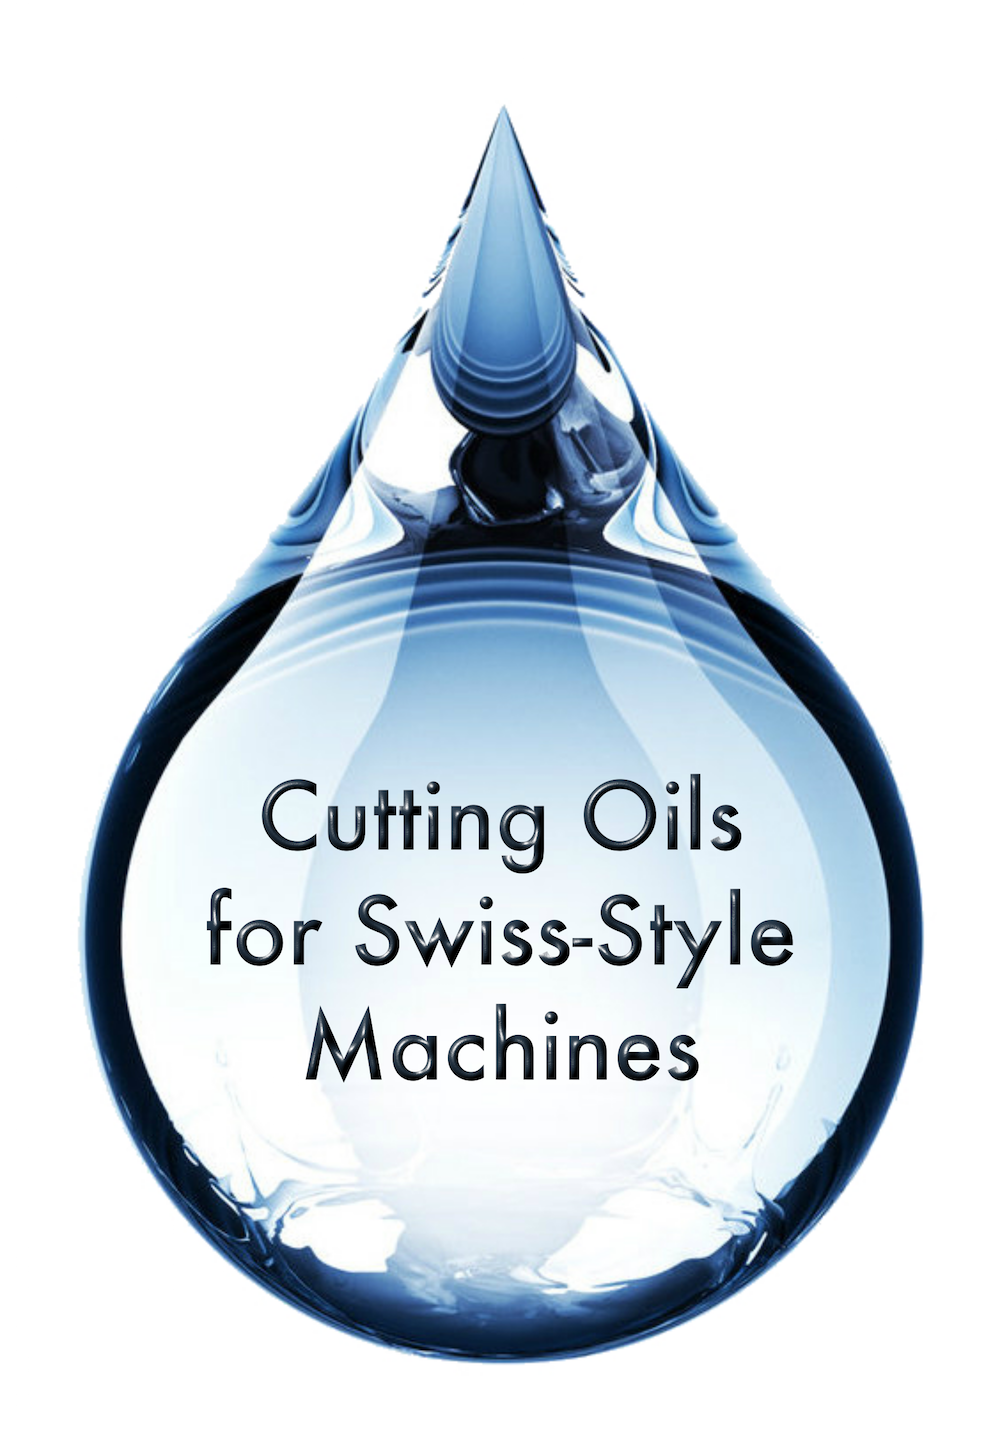 Cutting Oils for Swiss-Style Machines